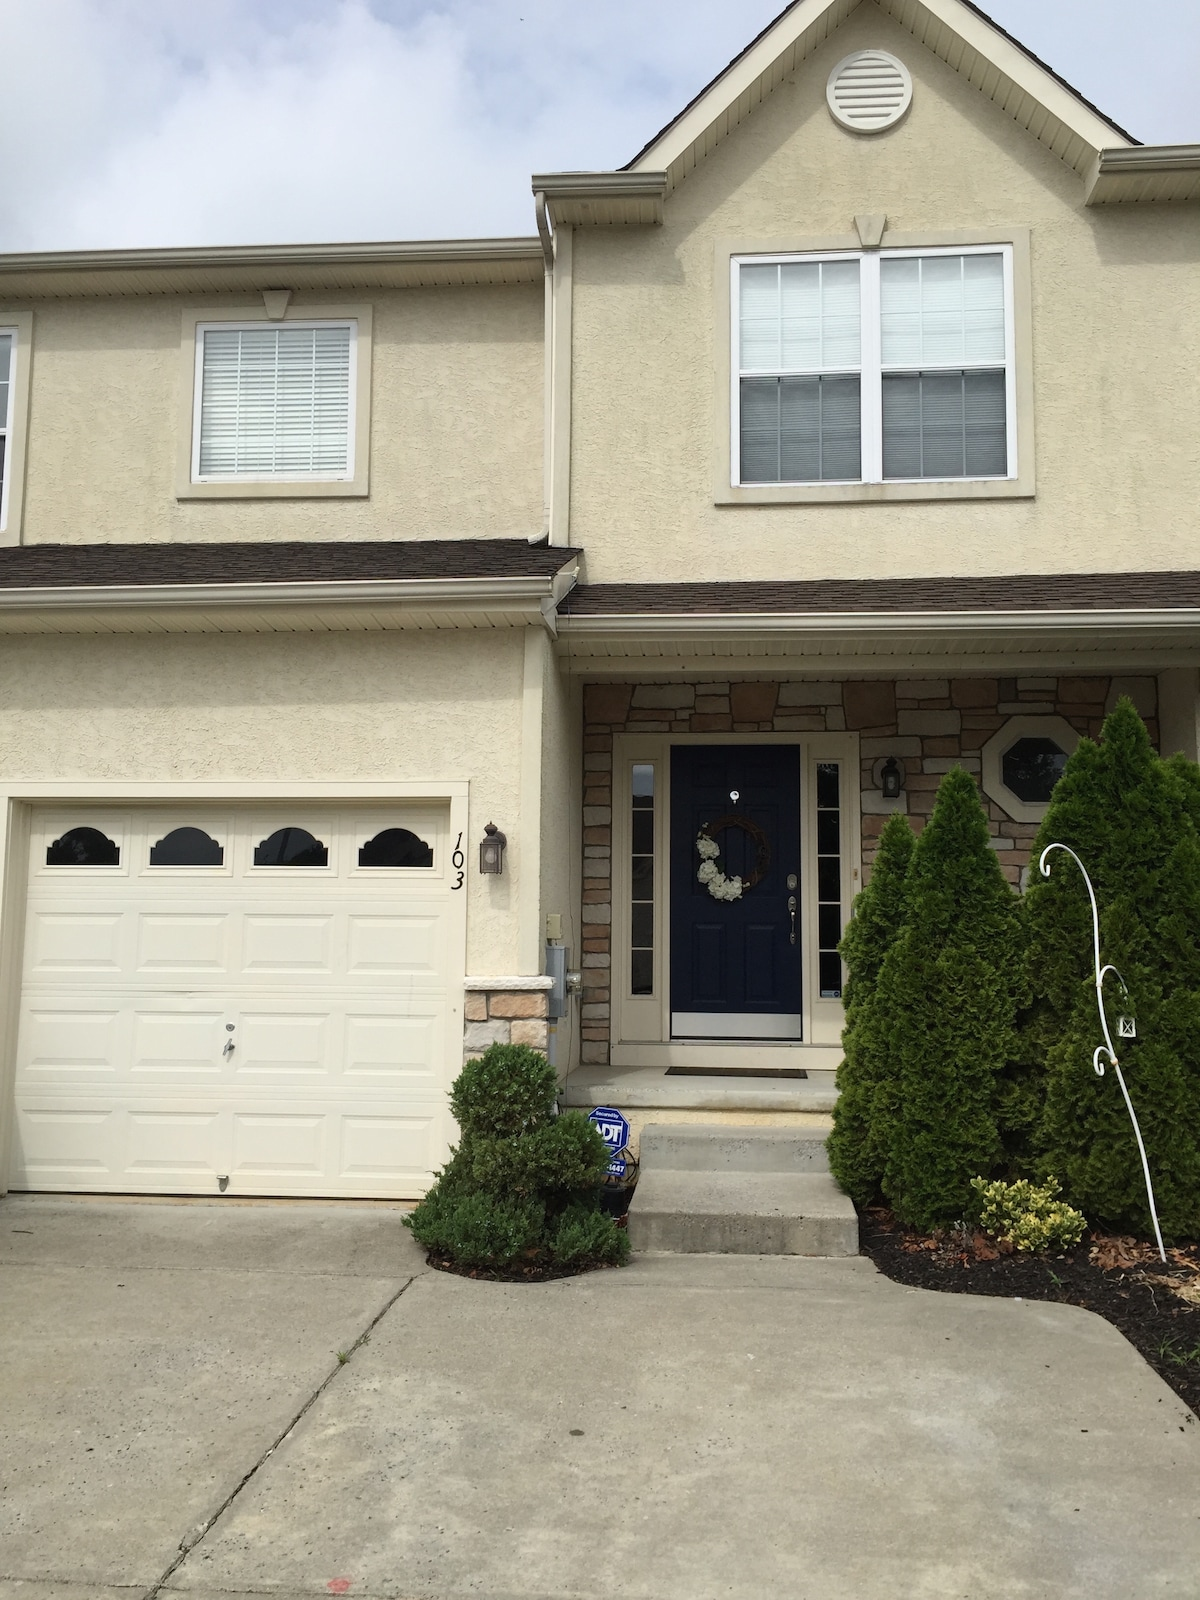 Home Sweet Home in NJ suburbs ~30m